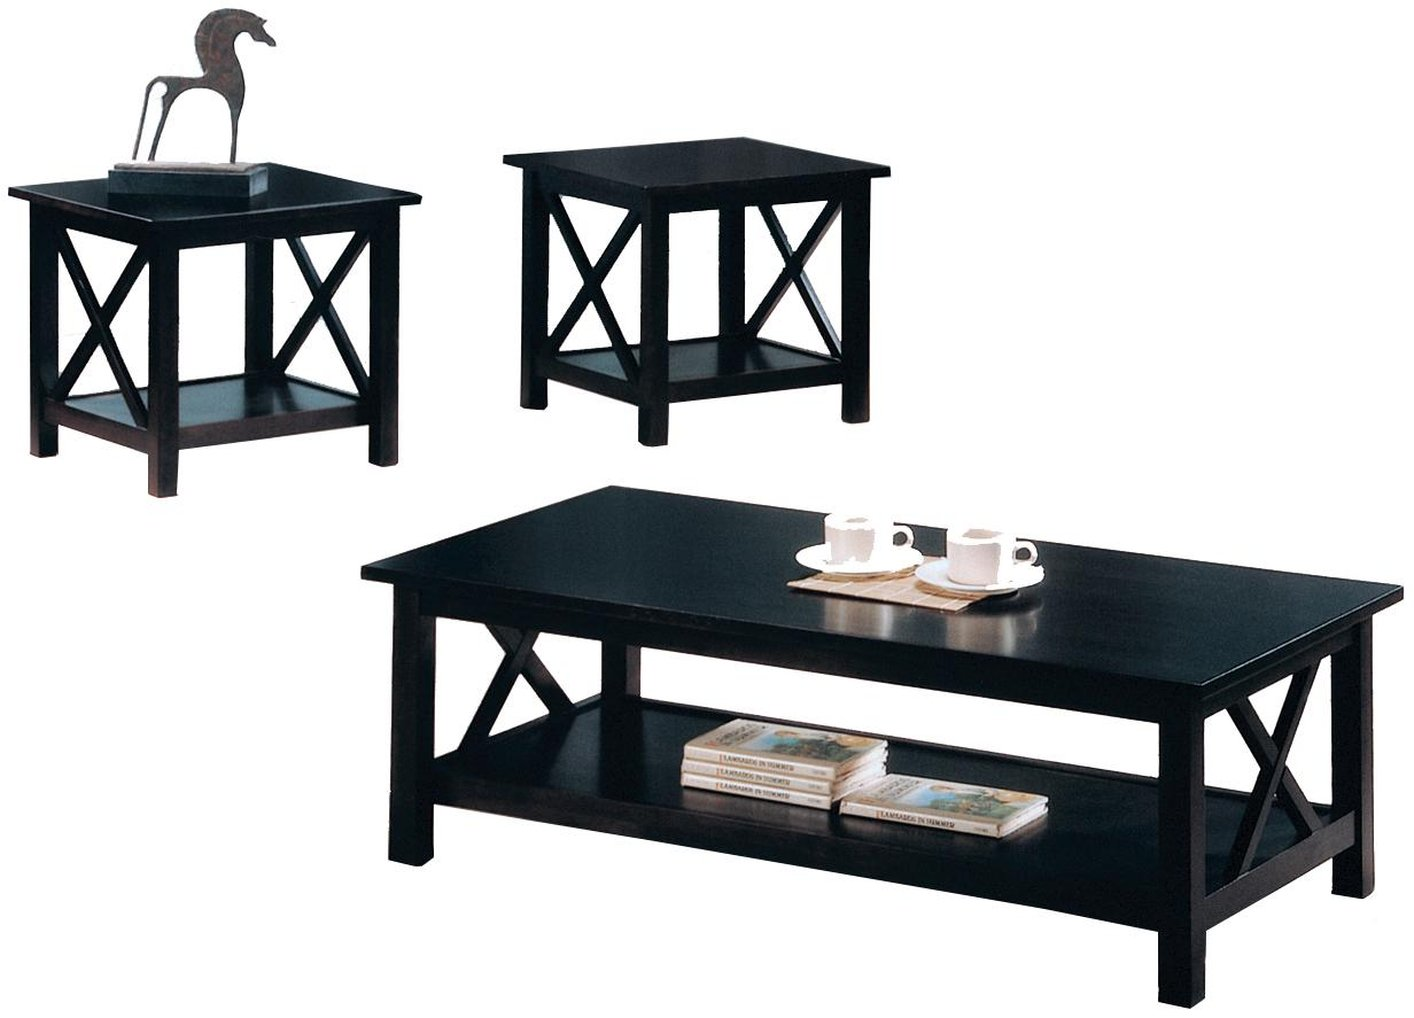 Coaster 5909 black wood coffee table set steal a sofa furniture outlet los angeles ca Black wooden coffee tables